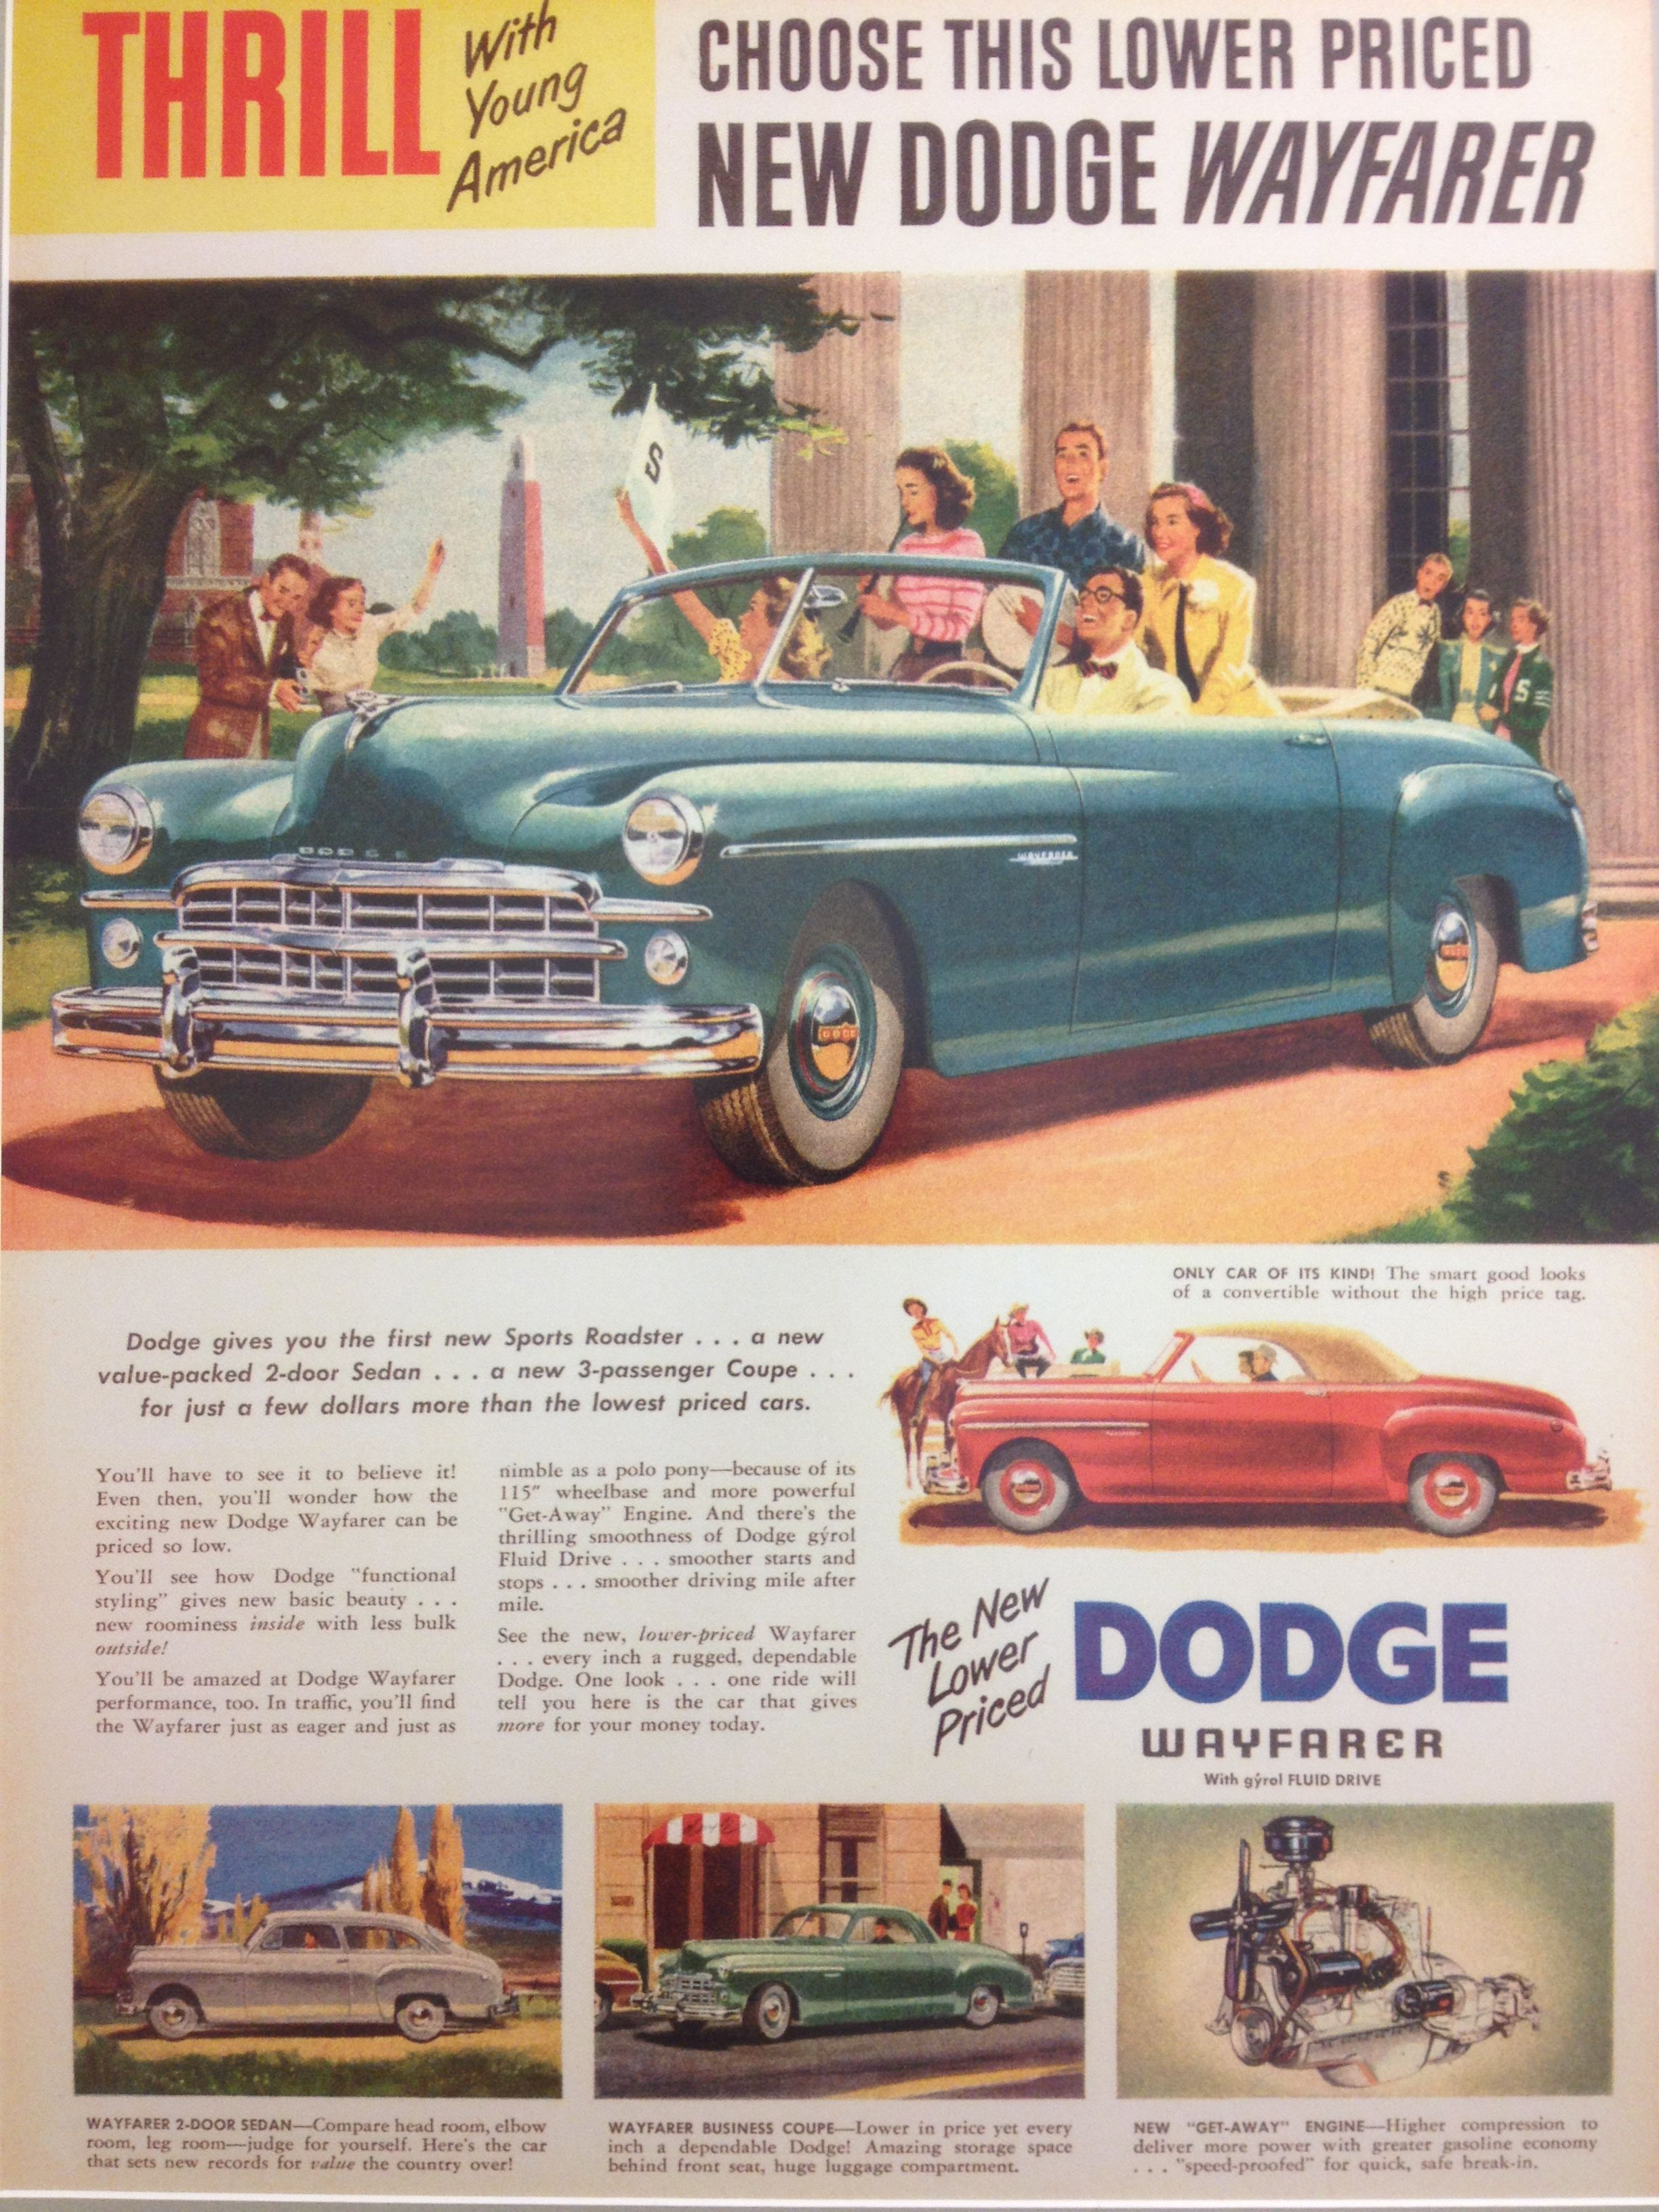 1949 Dodge Wayfarer - vintage ad at Kelley Blue Book headquarters ...